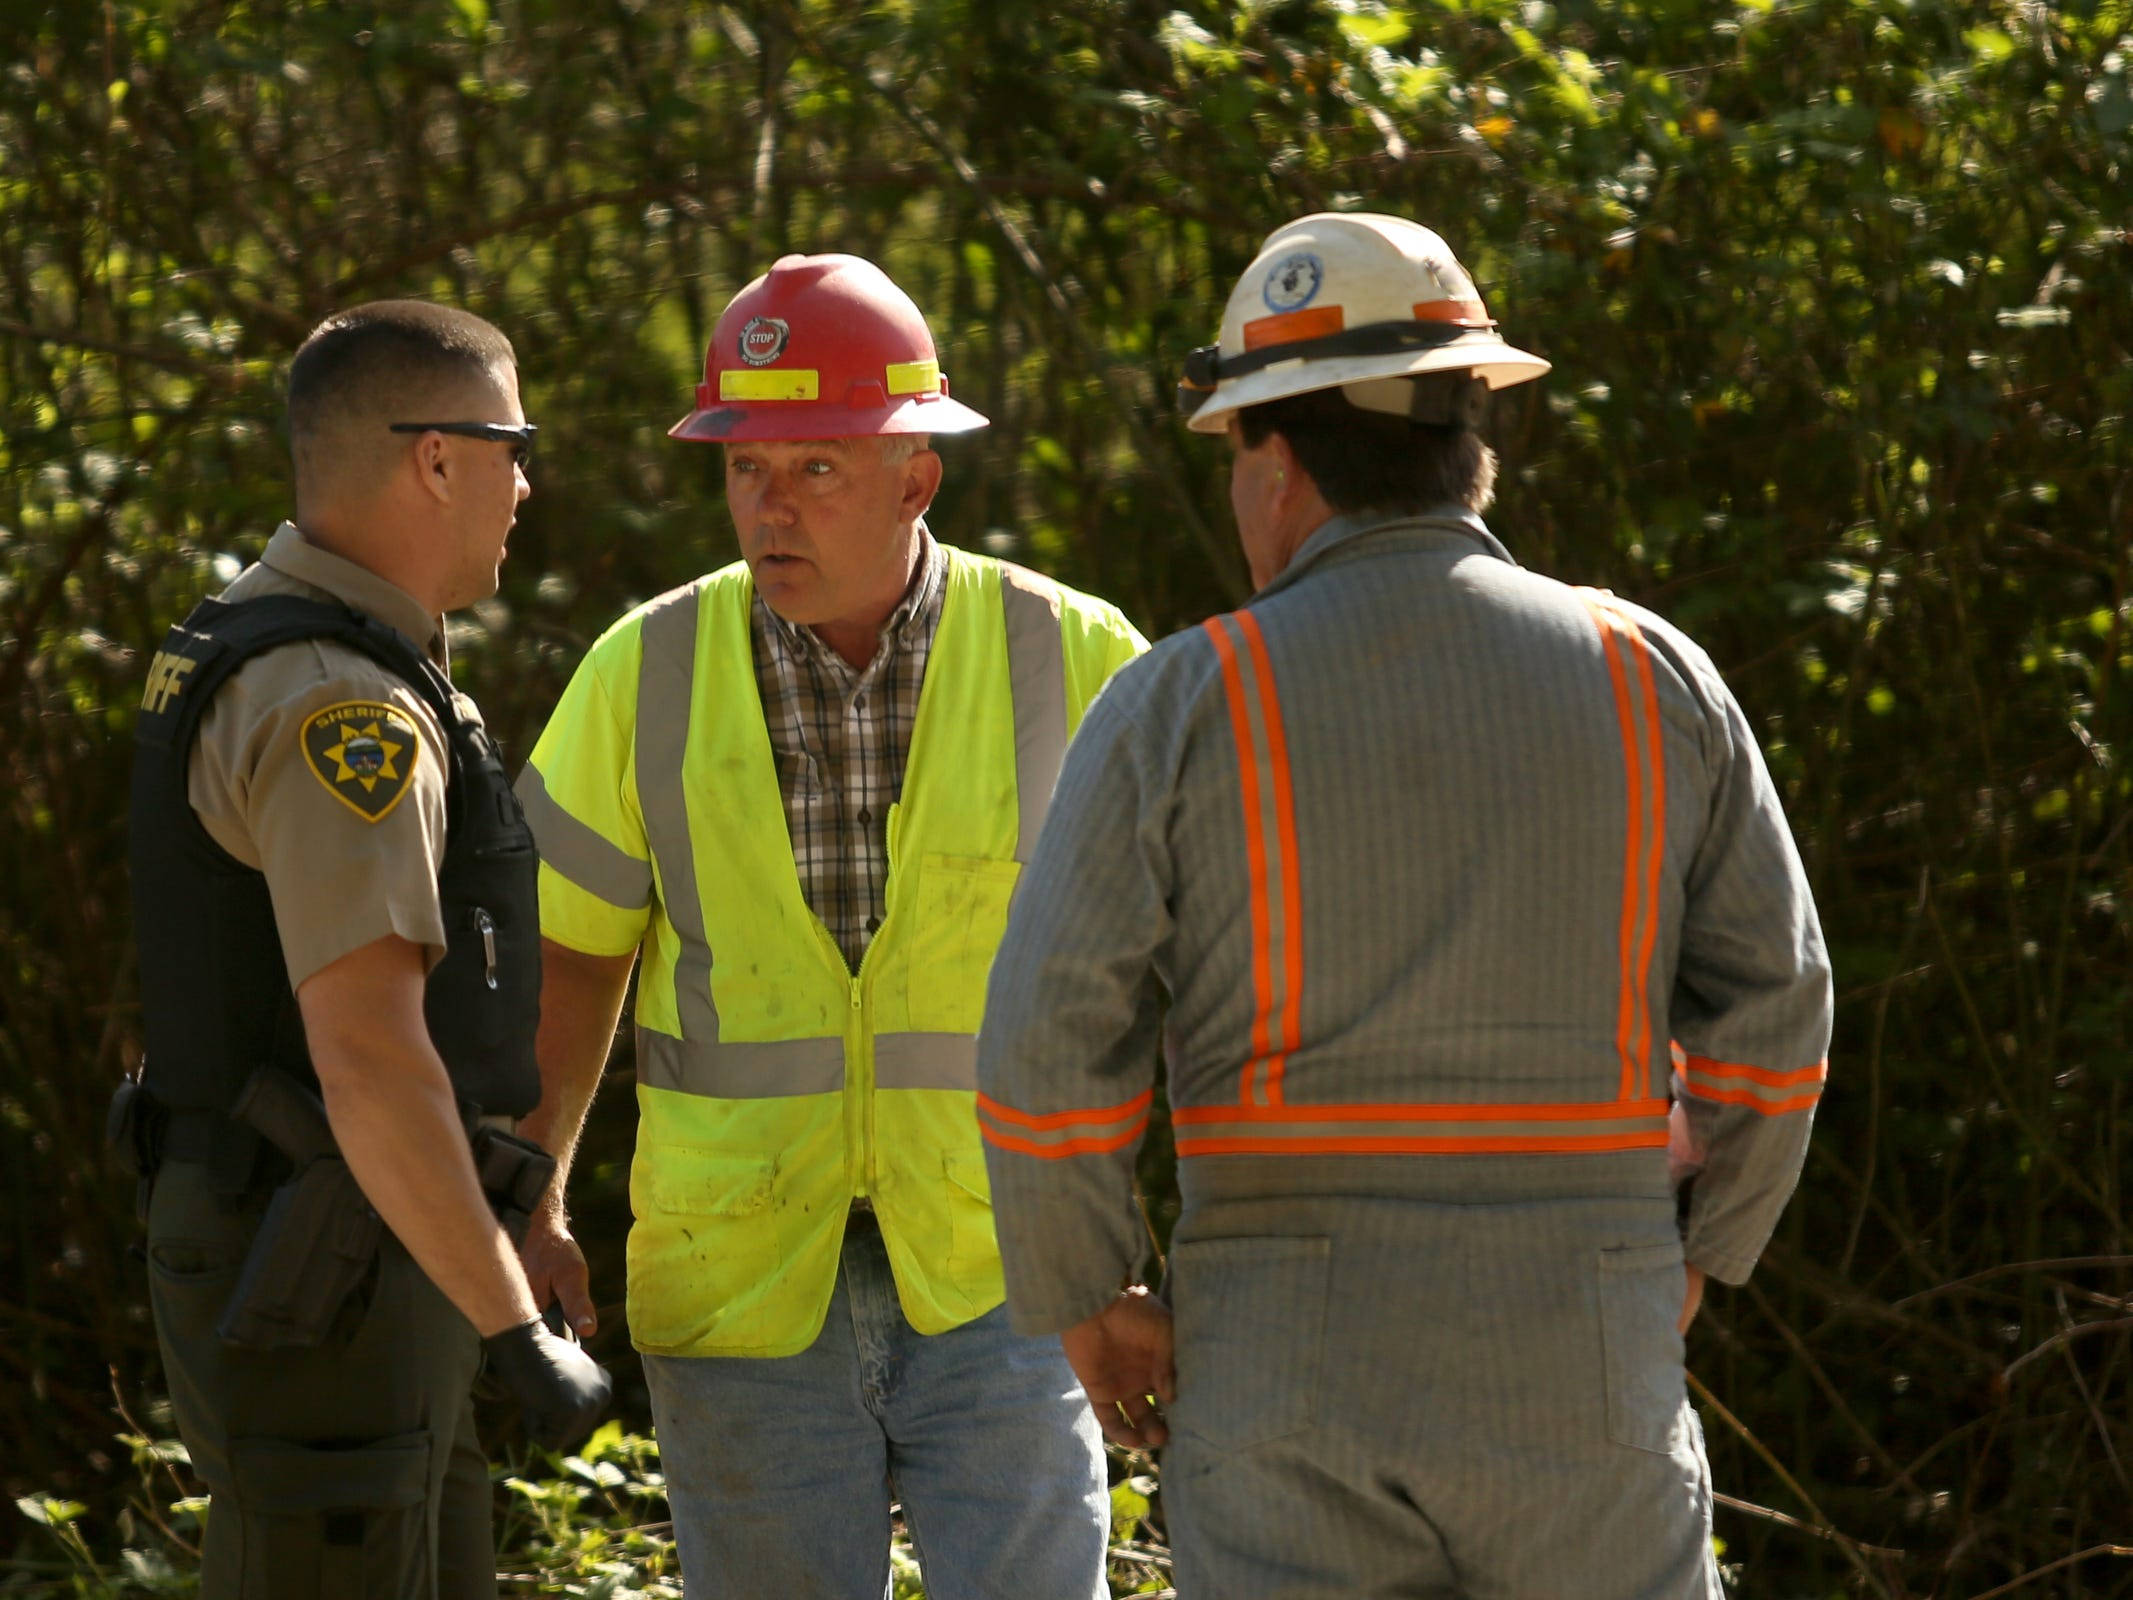 Rock quarry employees and law enforcement talk after a bulldozer came into a privately-owned rock quarry with a homeless camp near Wallace Marine Park in West Salem on May 7, 2019. Signs were posted throughout the camp recently stating personal property must be removed or it will be taken by the landowner and its designated agent starting May 7. An eviction can't be enforced until a court approves it.